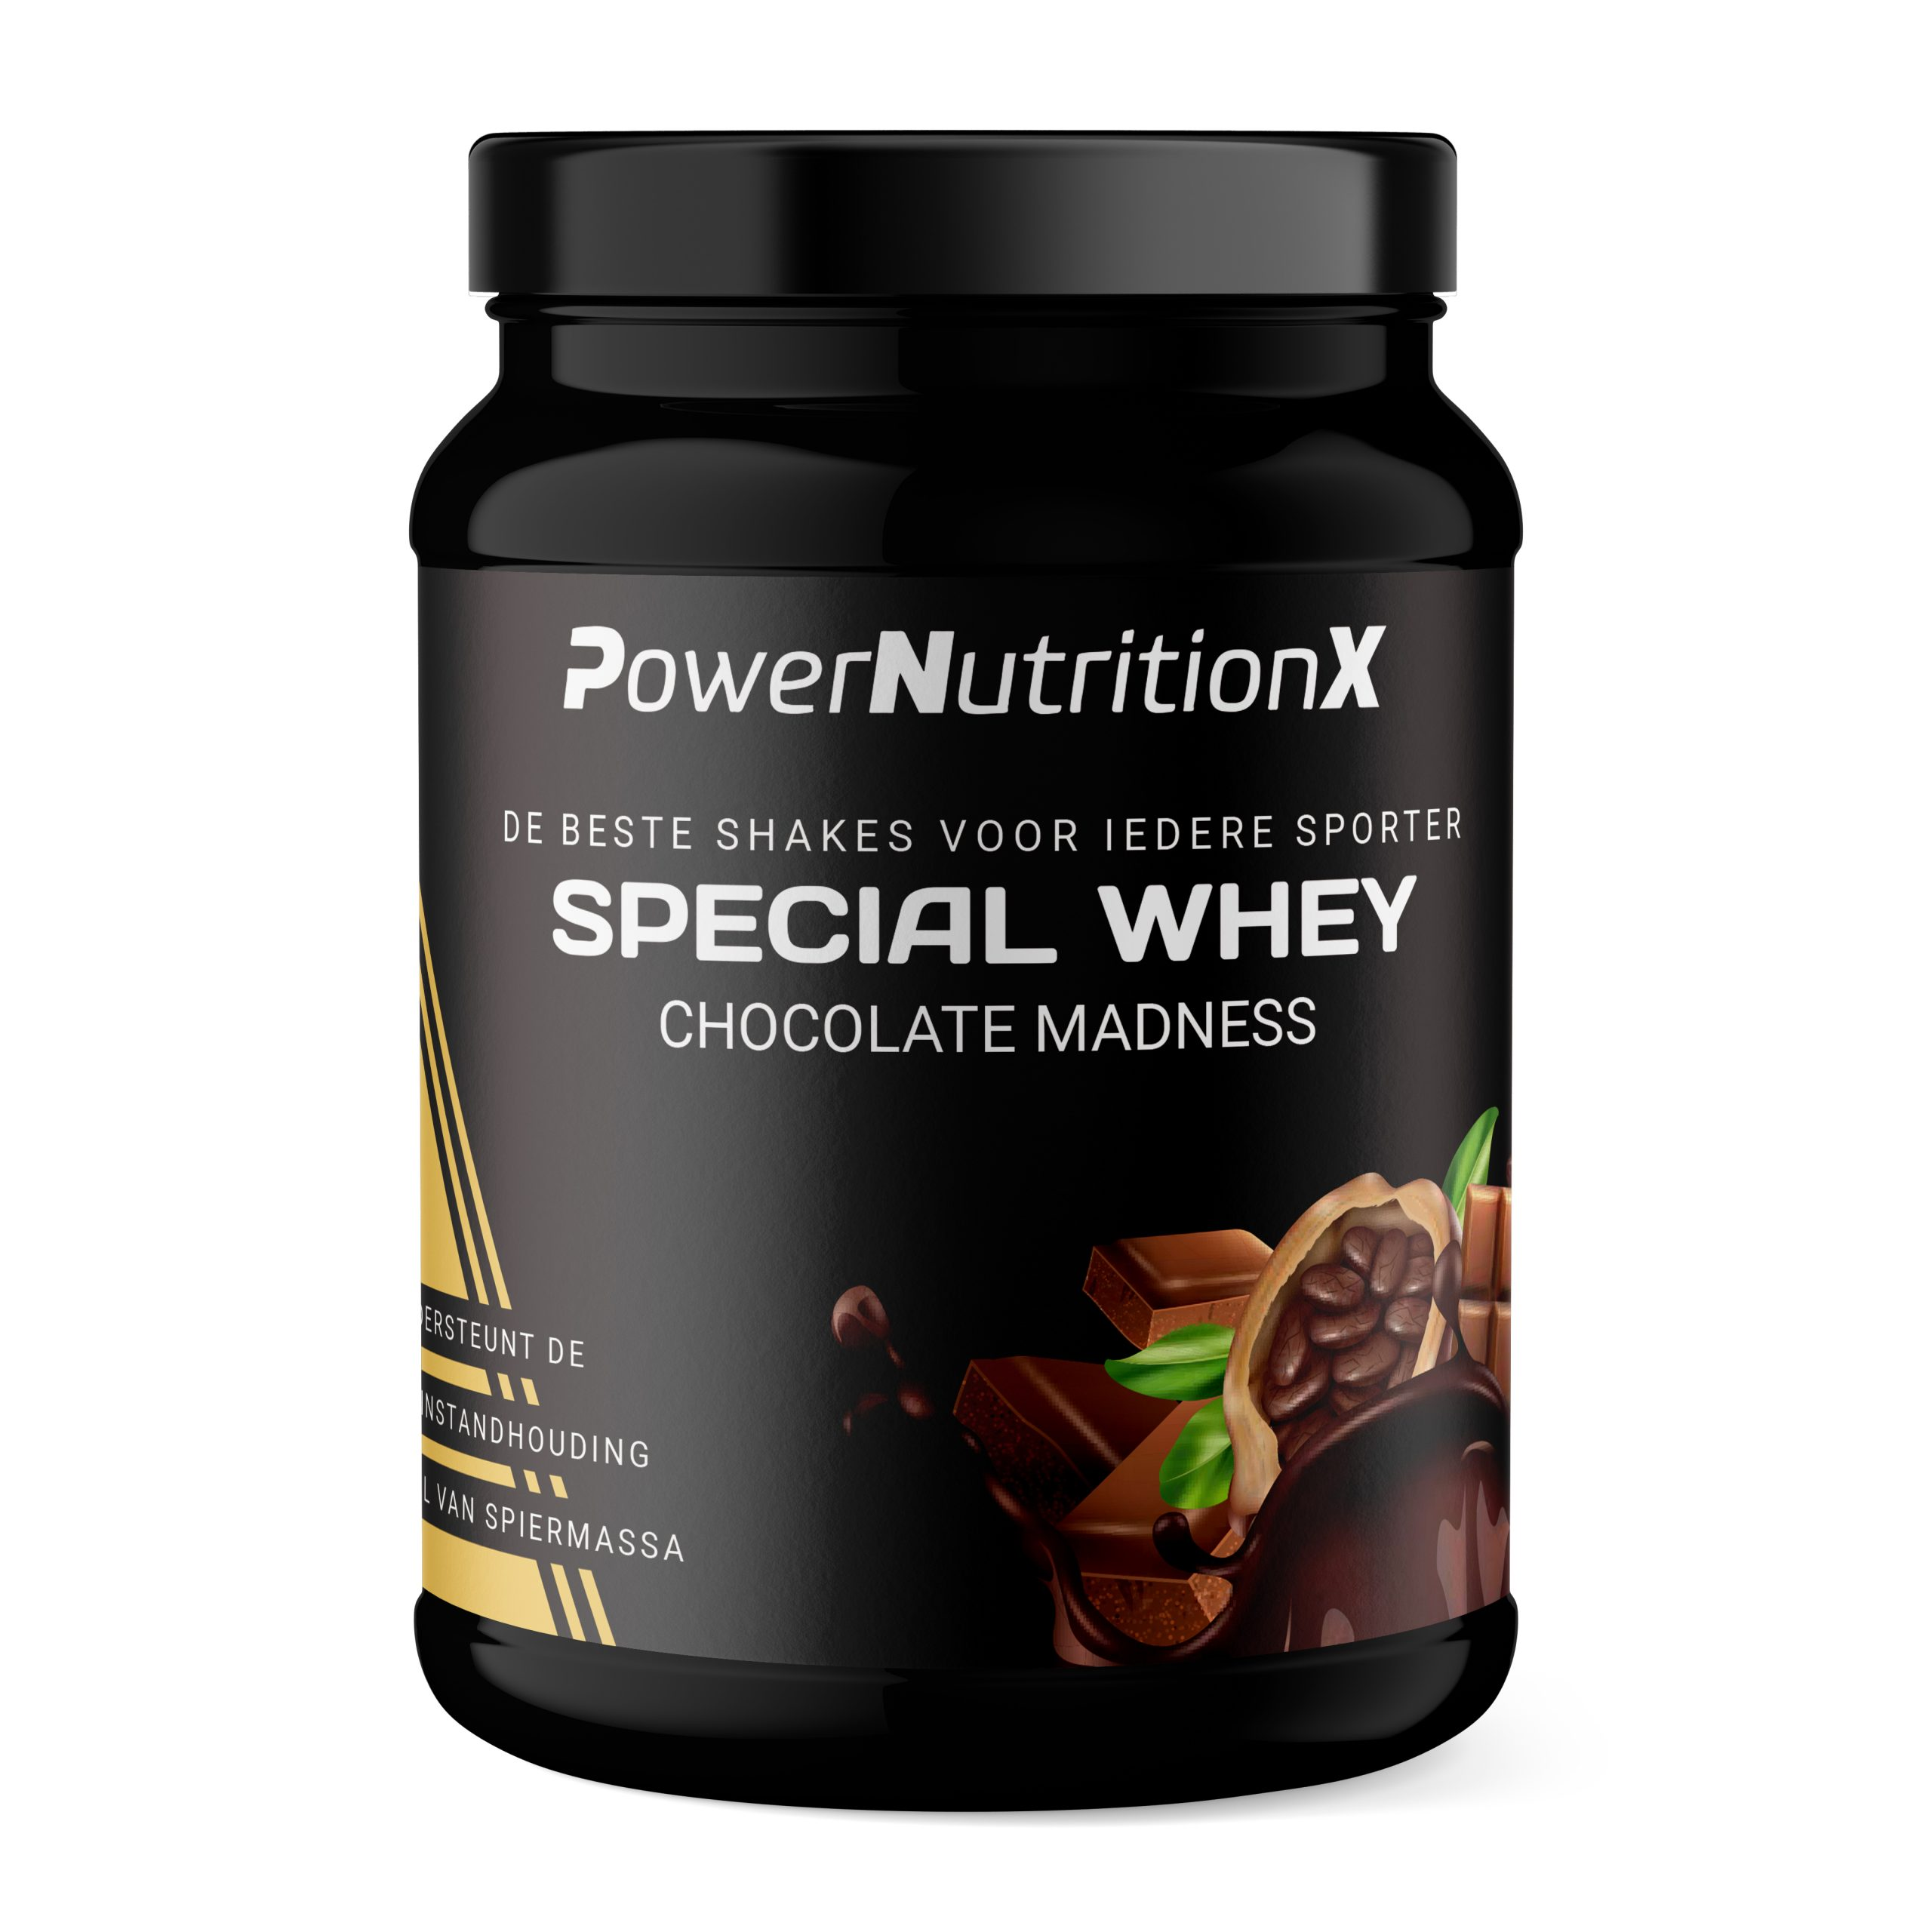 Special whey